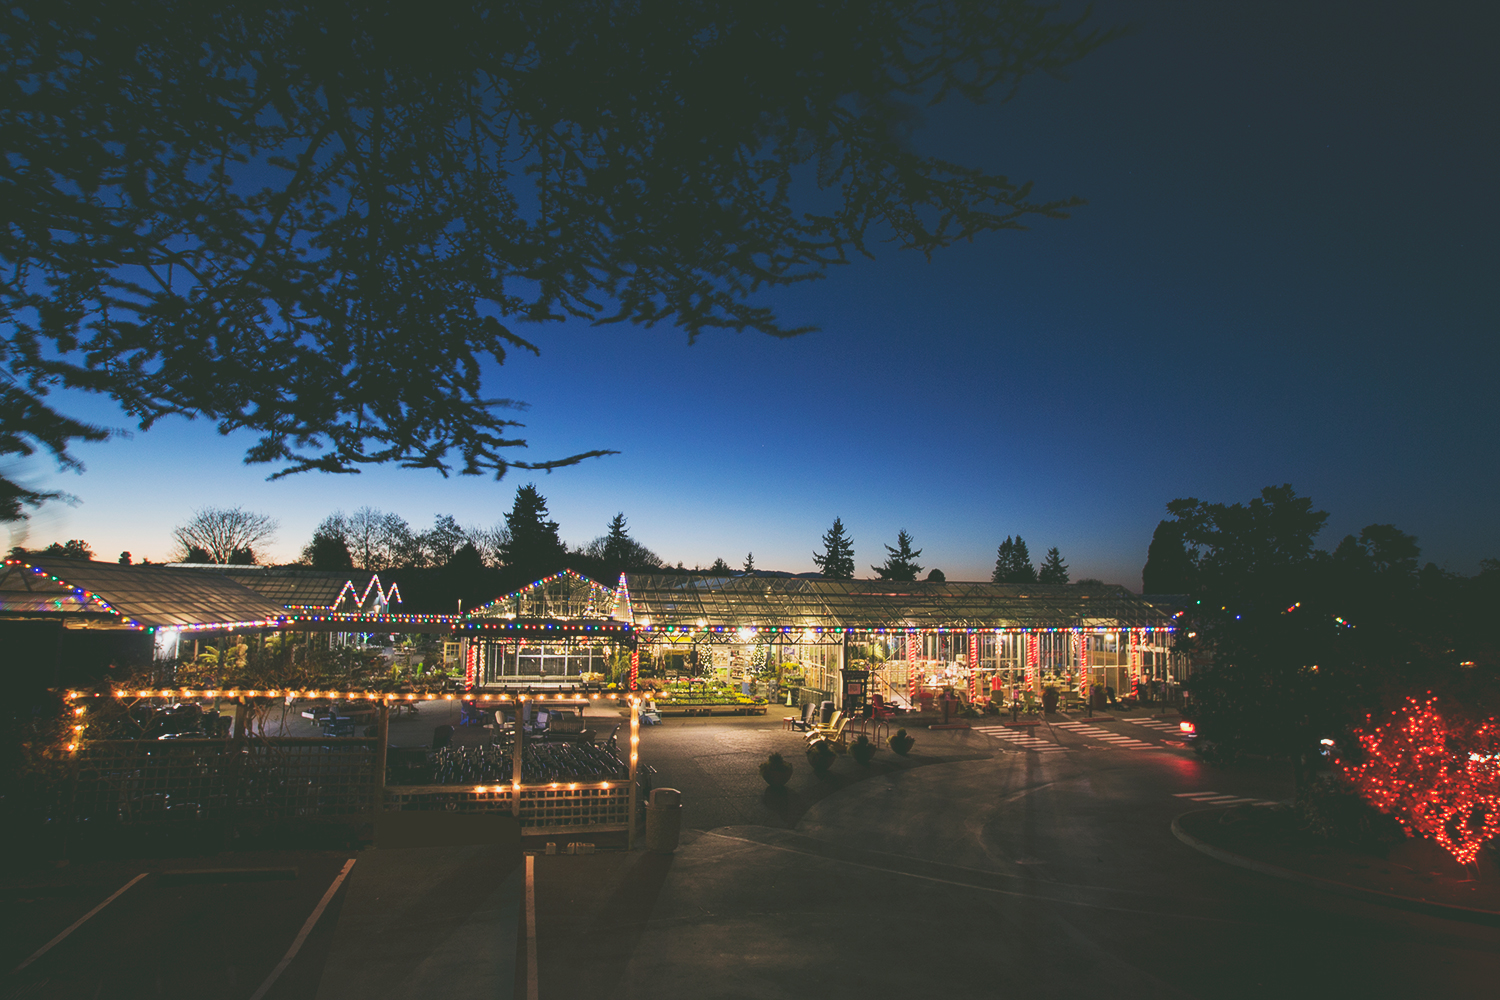 Entrance to Swansons at night